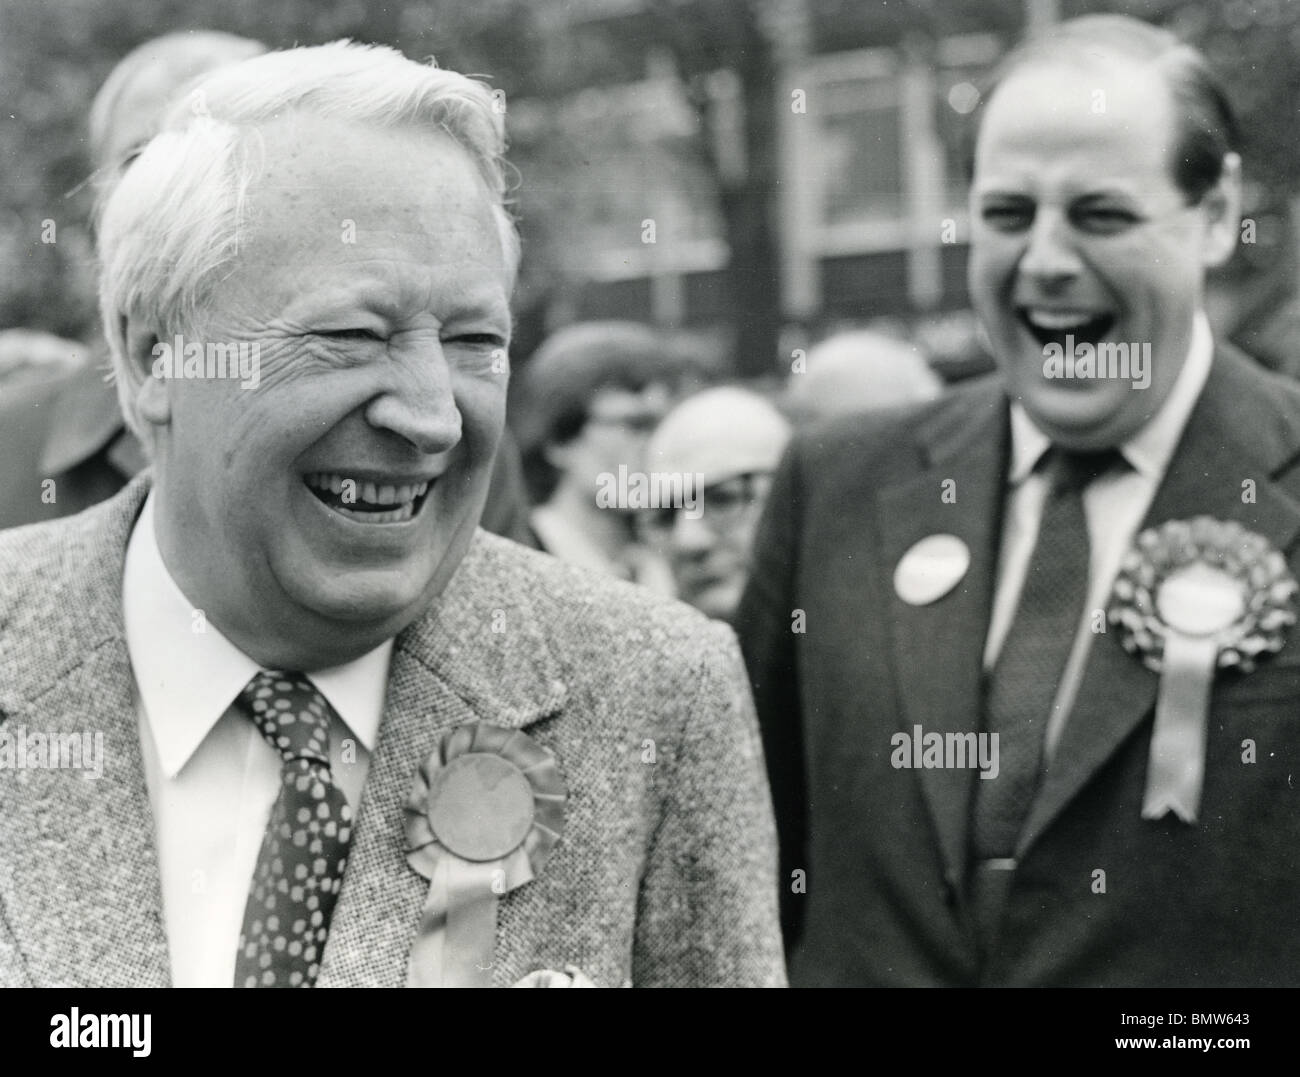 EDWARD HEATH - UK Conservative politician at left in campaigning in 1974 Stock Photo